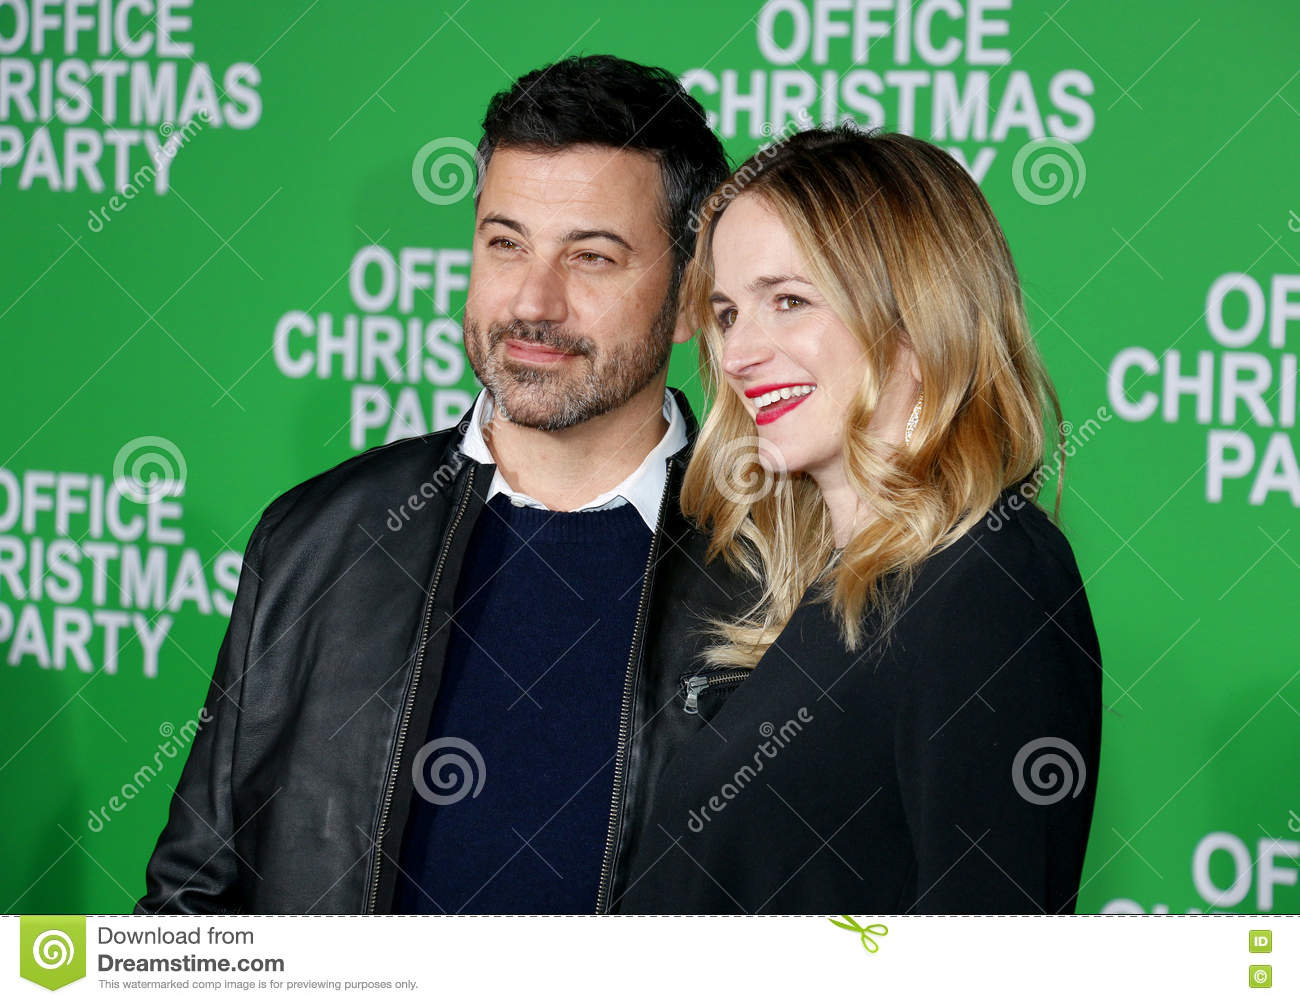 Jimmy Kimmel And Molly McNearney Editorial Stock Photo - Image of ...